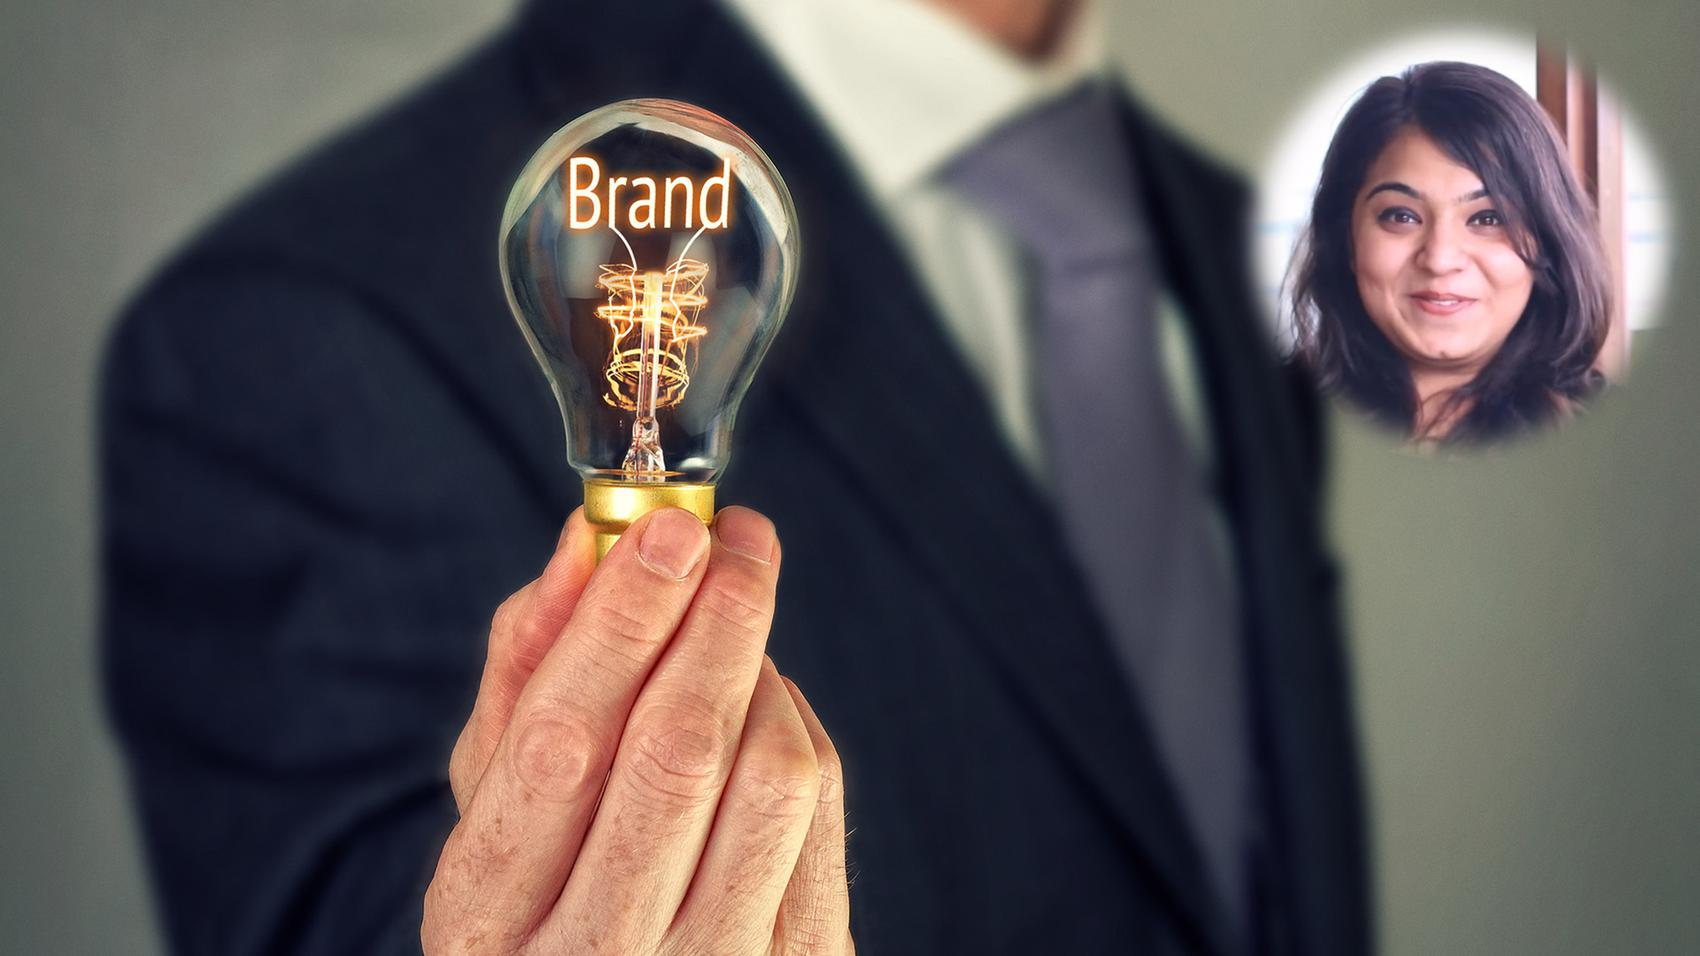 Career in Brand Management